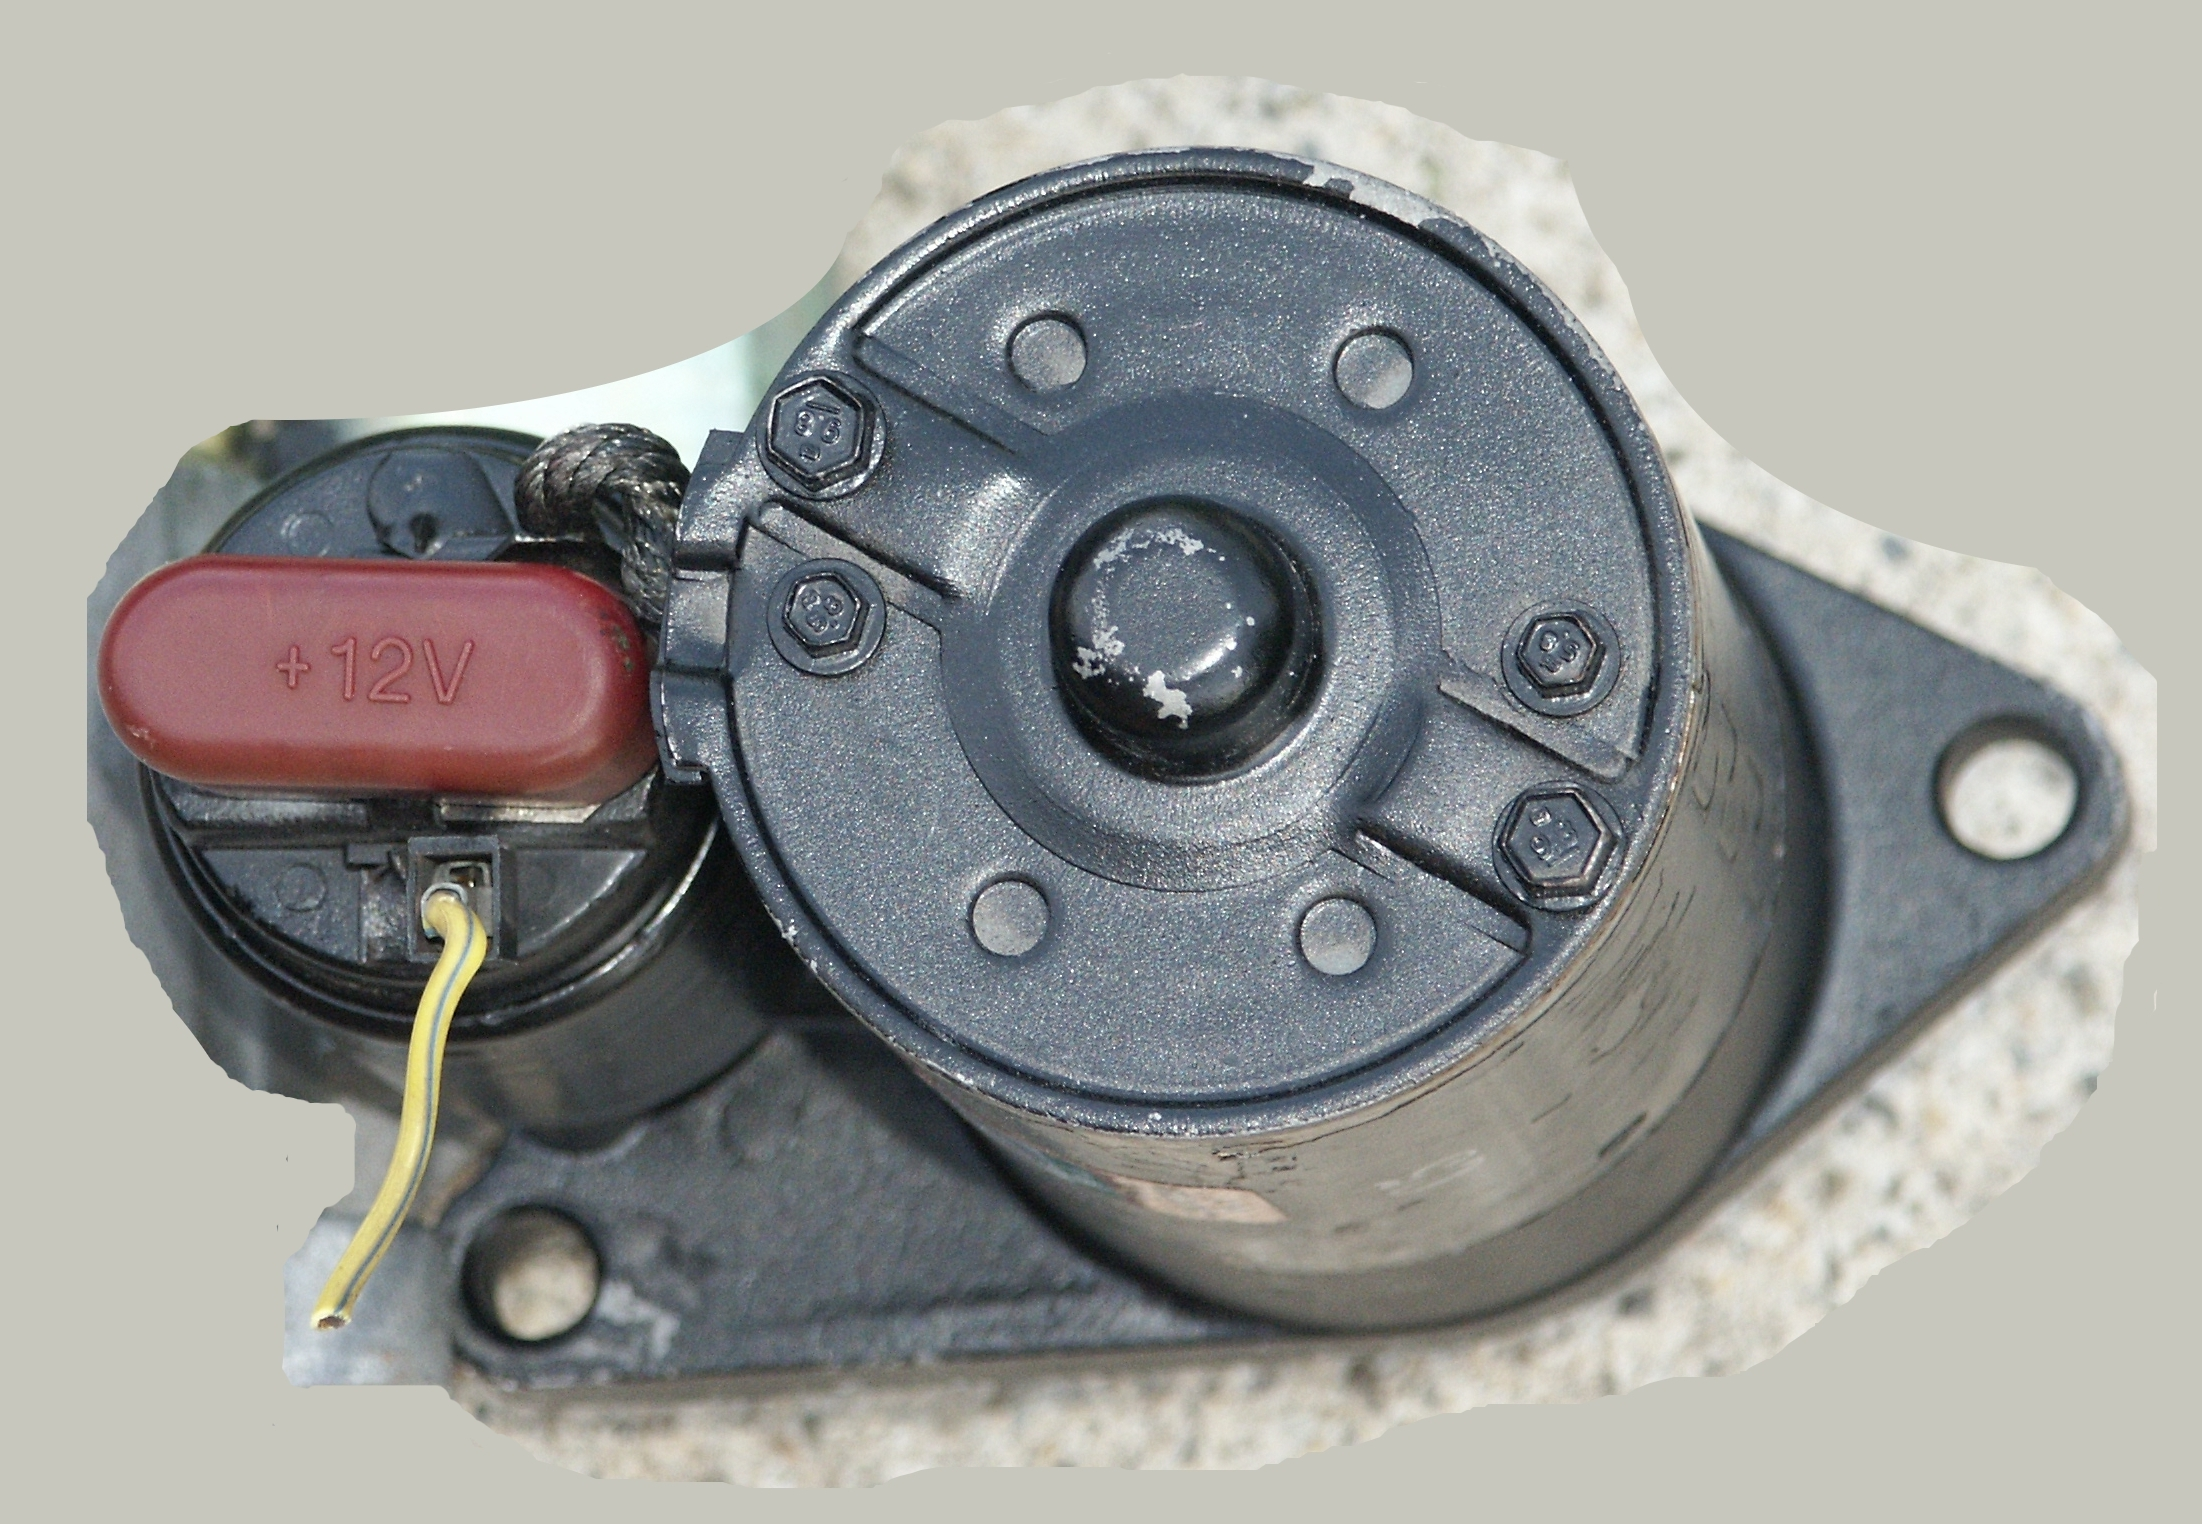 Ford Starter Solenoid Spade Terminal Ignition Switch Pigtail Wiring Heres The Same But With Red Safety Cap Over High Current Battery Feeds Connection Points Removed